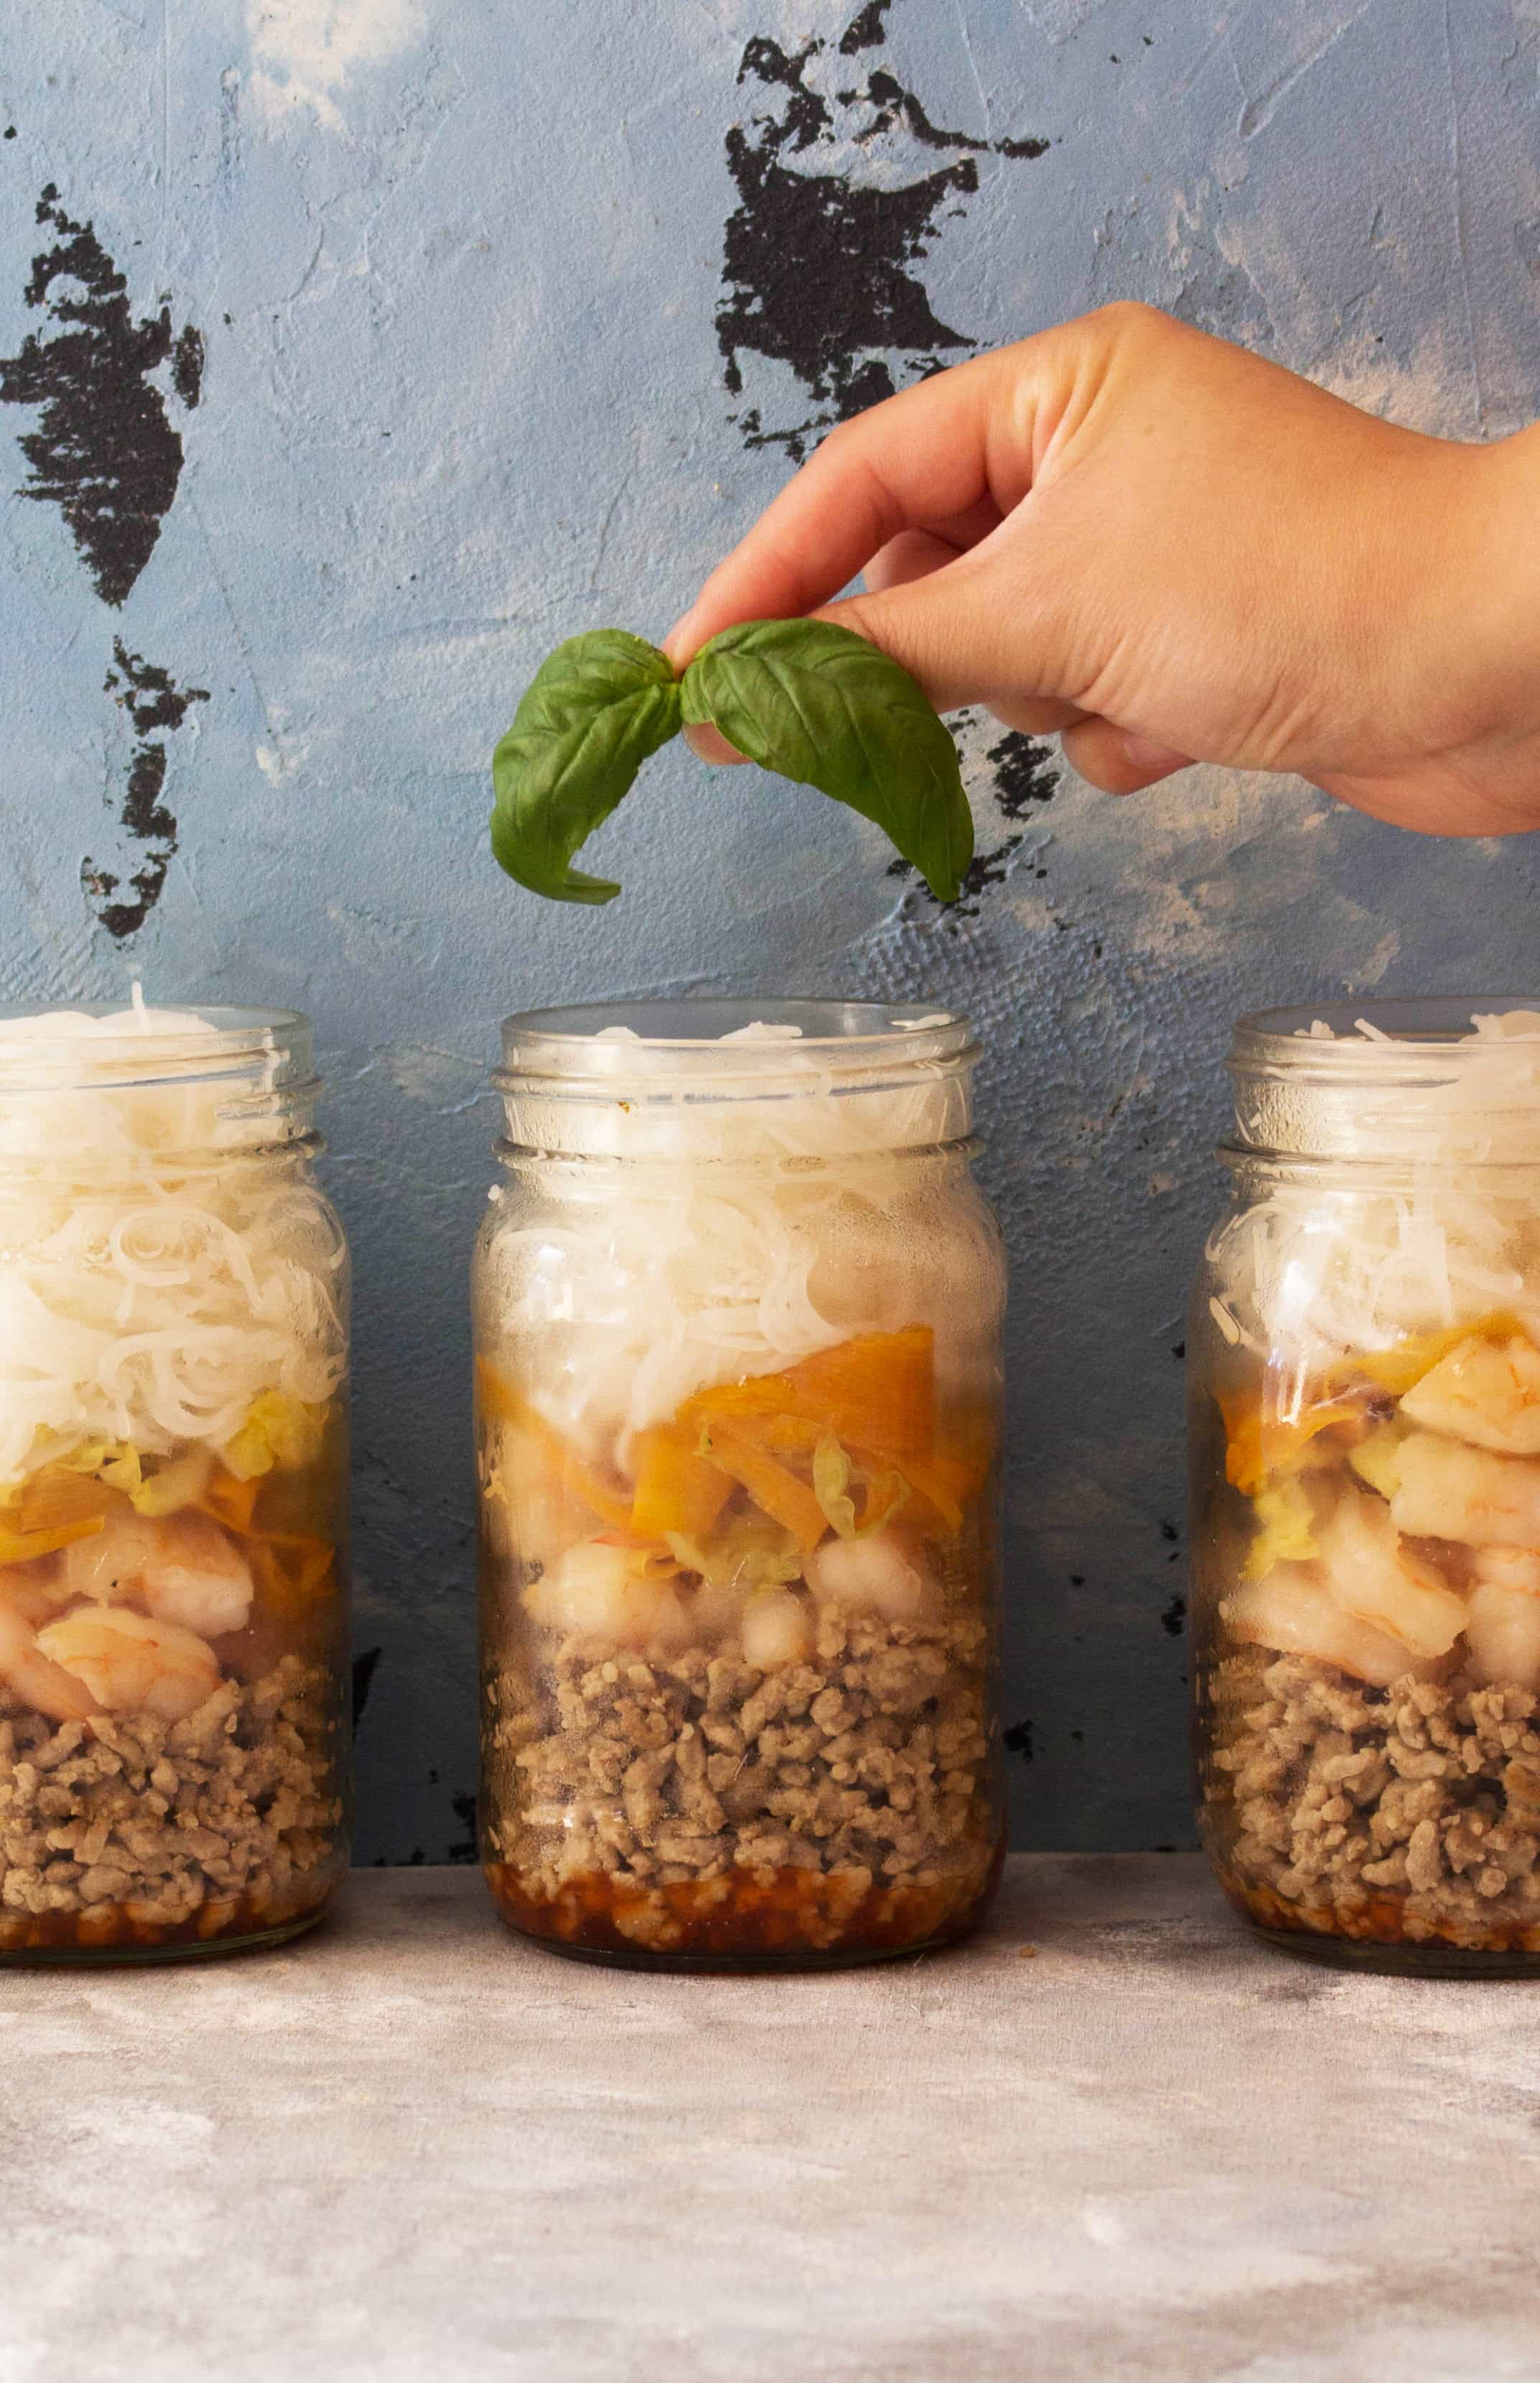 Mason Jar Meals: This easy deconstructed spring roll in a jar is a fun and delicious way to get your spring roll fix without having to fry or wrap a roll!